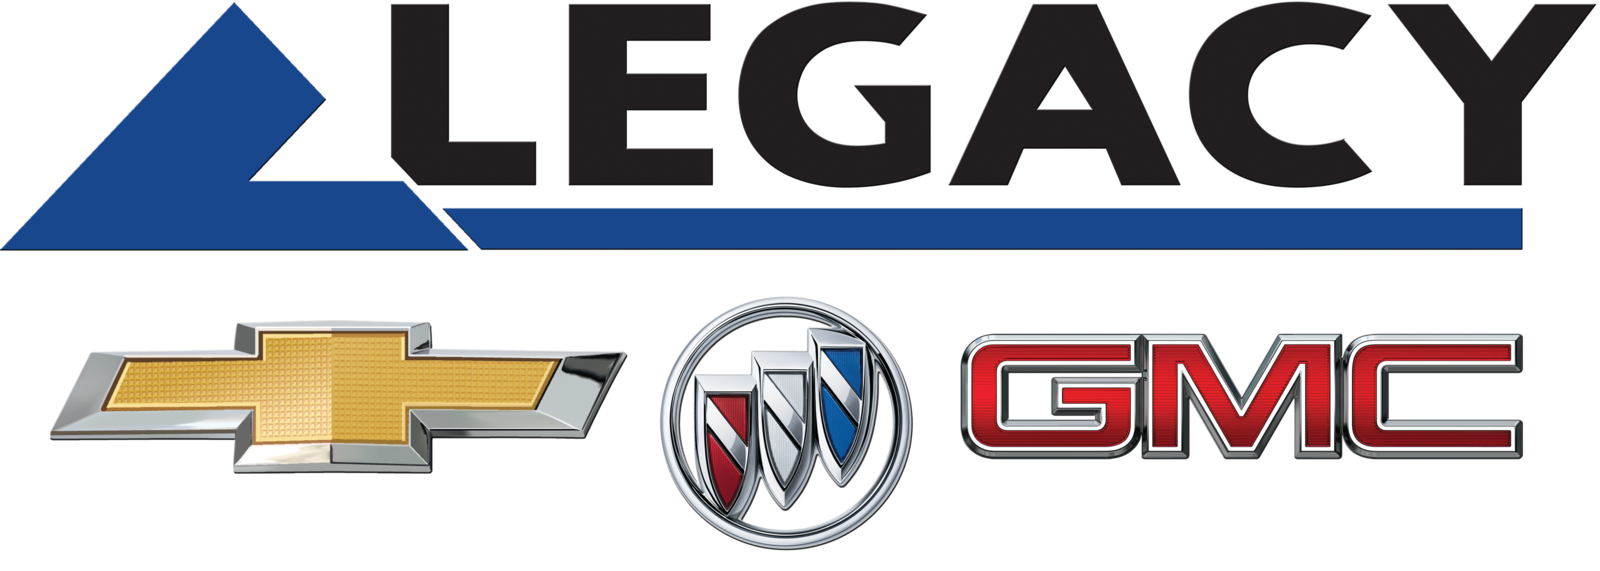 Chevrolet Dealers In Ky >> Legacy Chevrolet Cadillac Buick GMC - Corbin, KY: Read ...